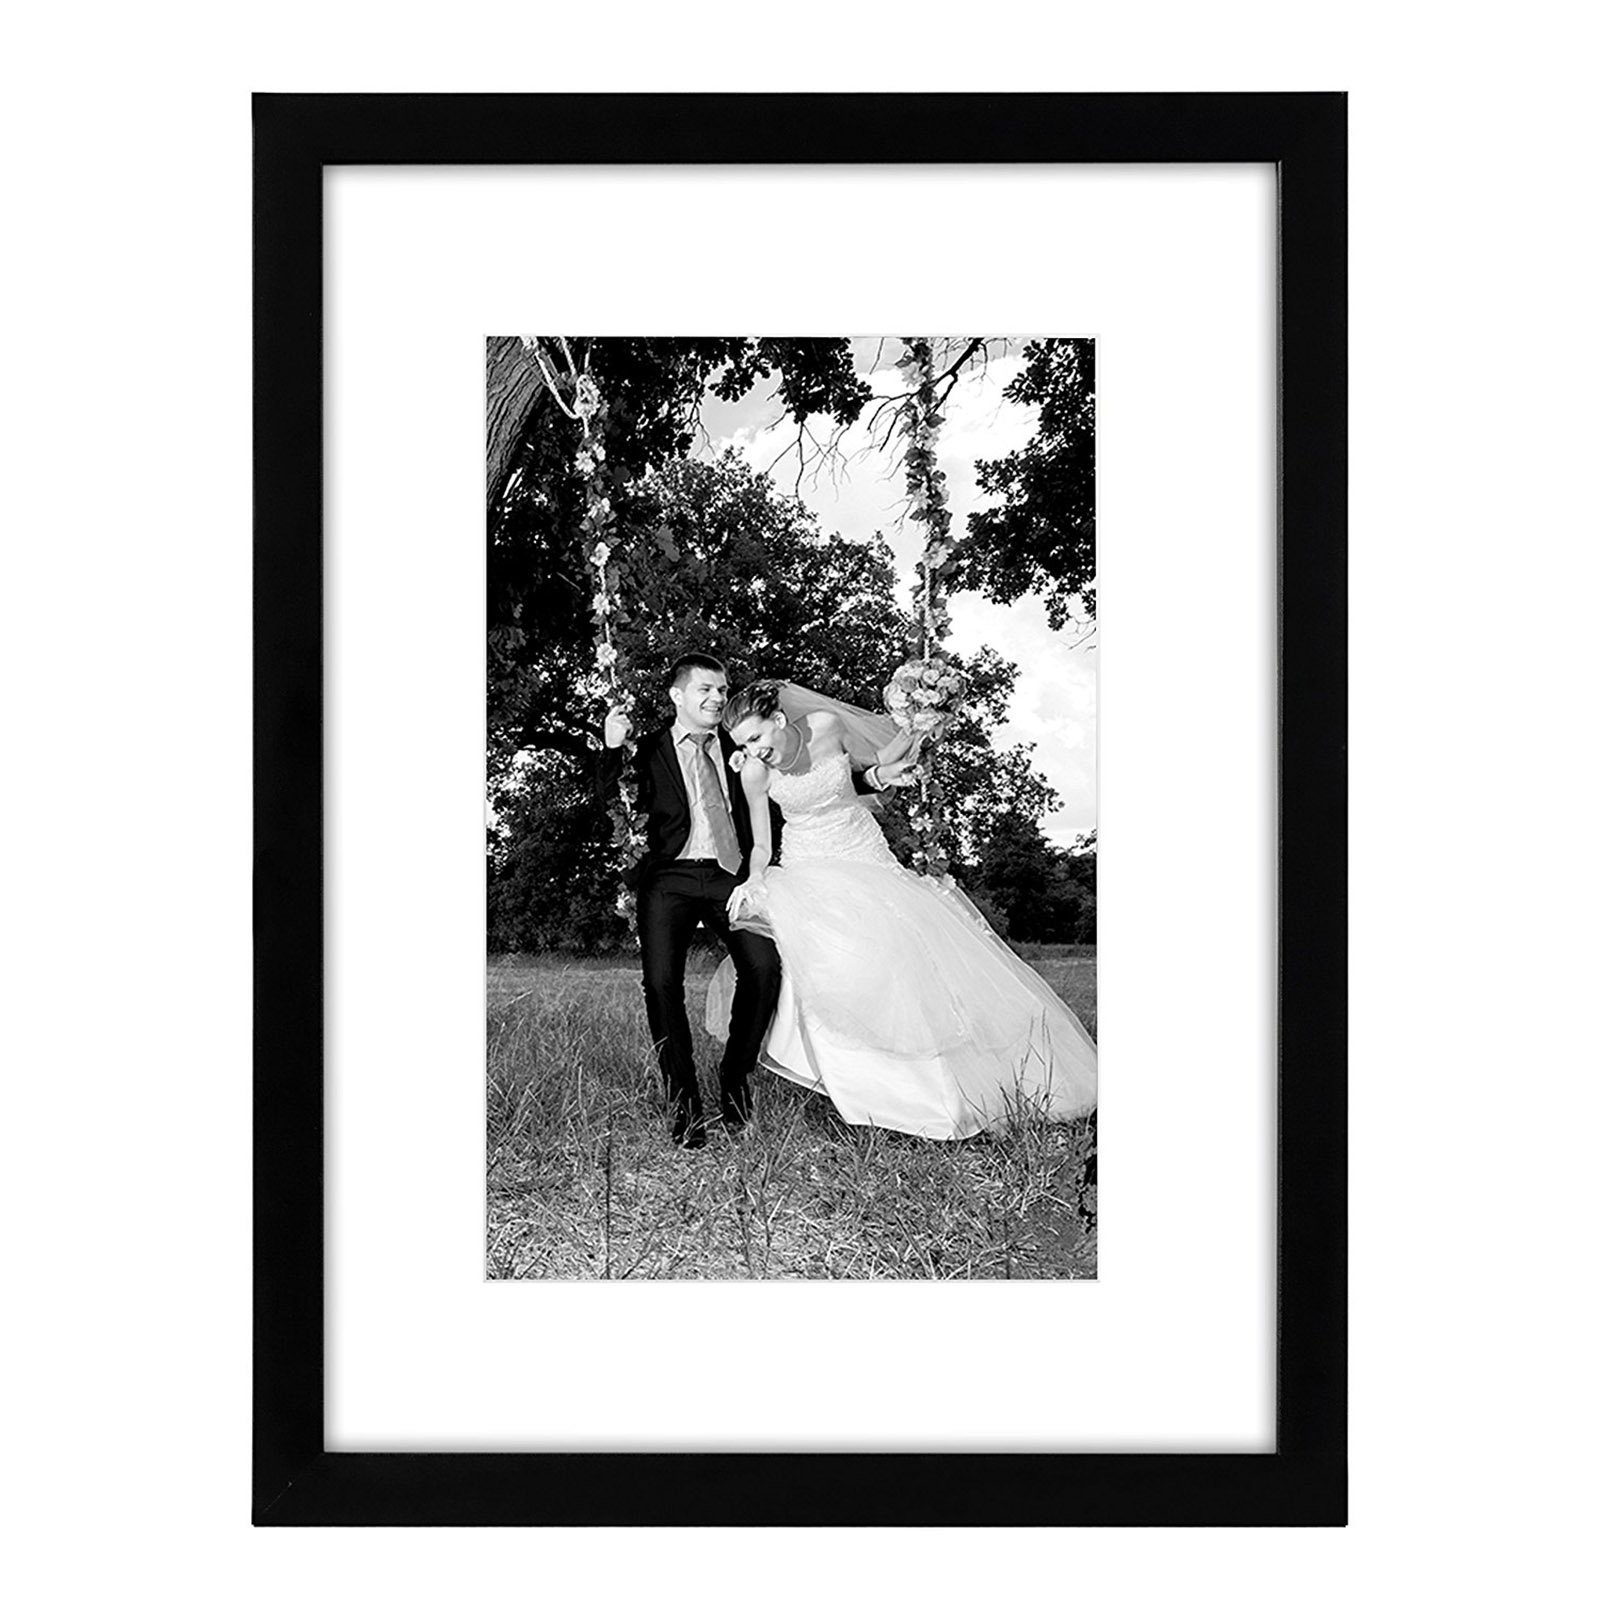 Americanflat 12x16 Black Picture Frame by Americanflat